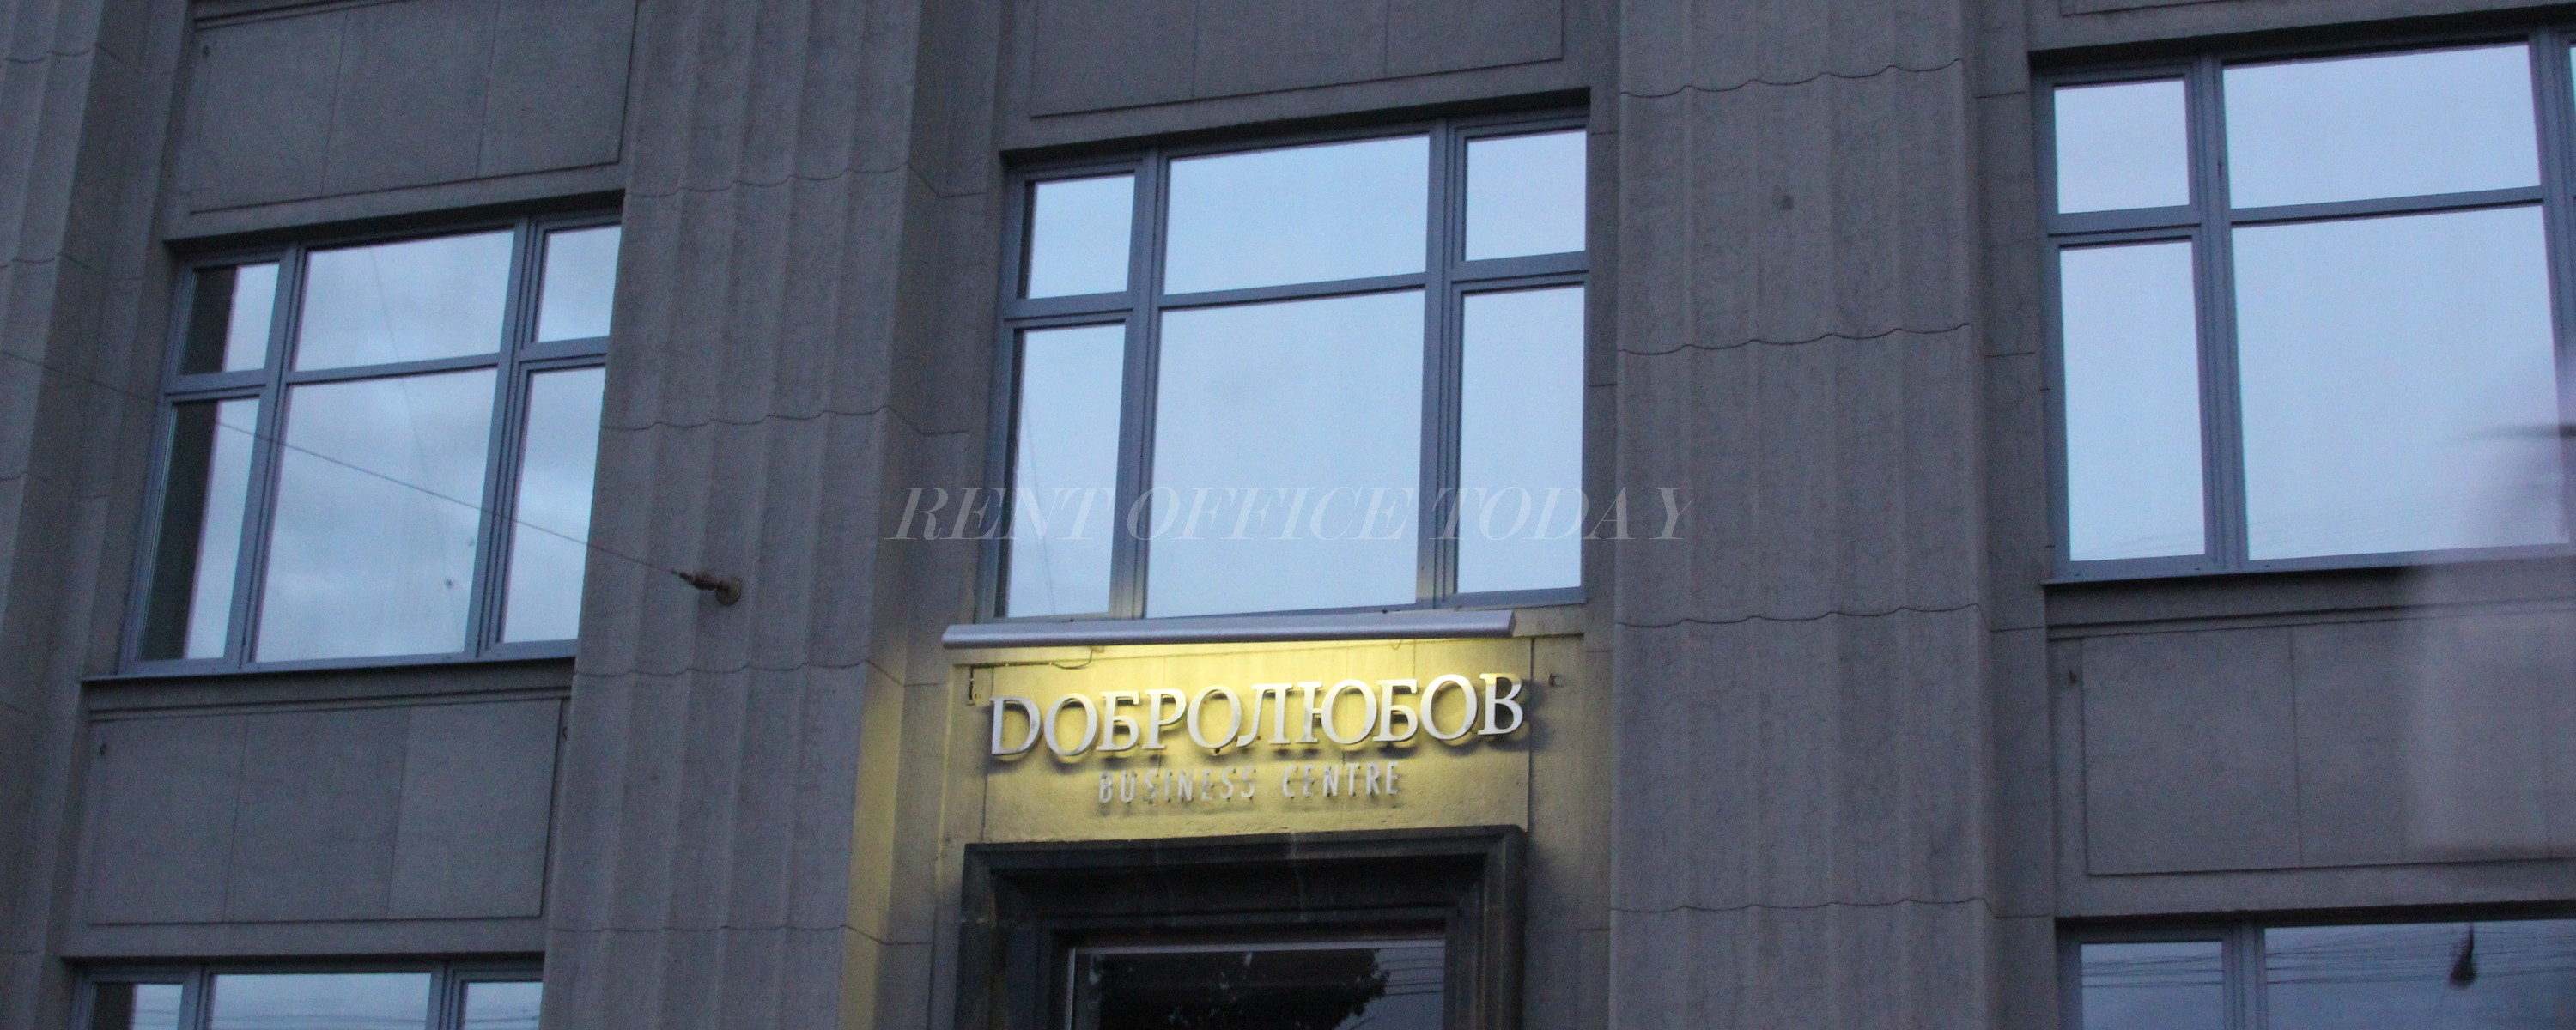 office rent dobrolubov-2